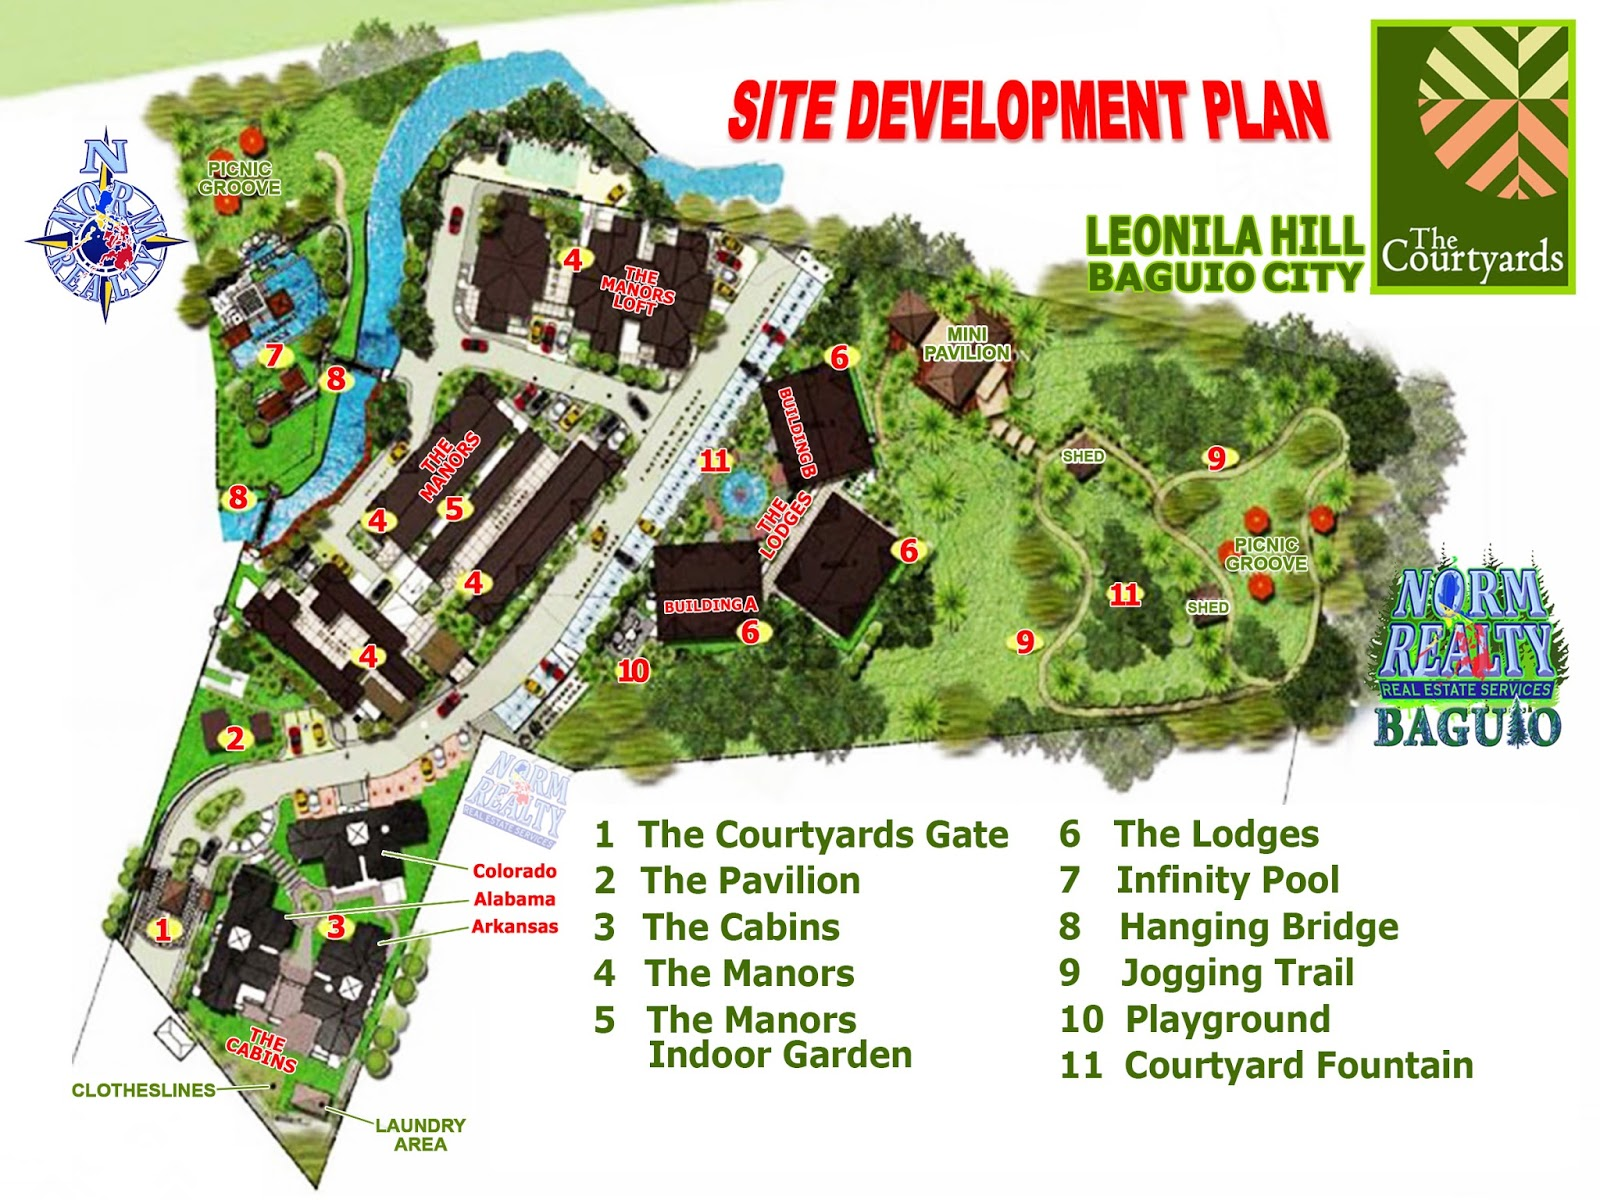 Baguio properties by ashley normrealty the first master planned garden community in baguio for Baguio country club swimming pool